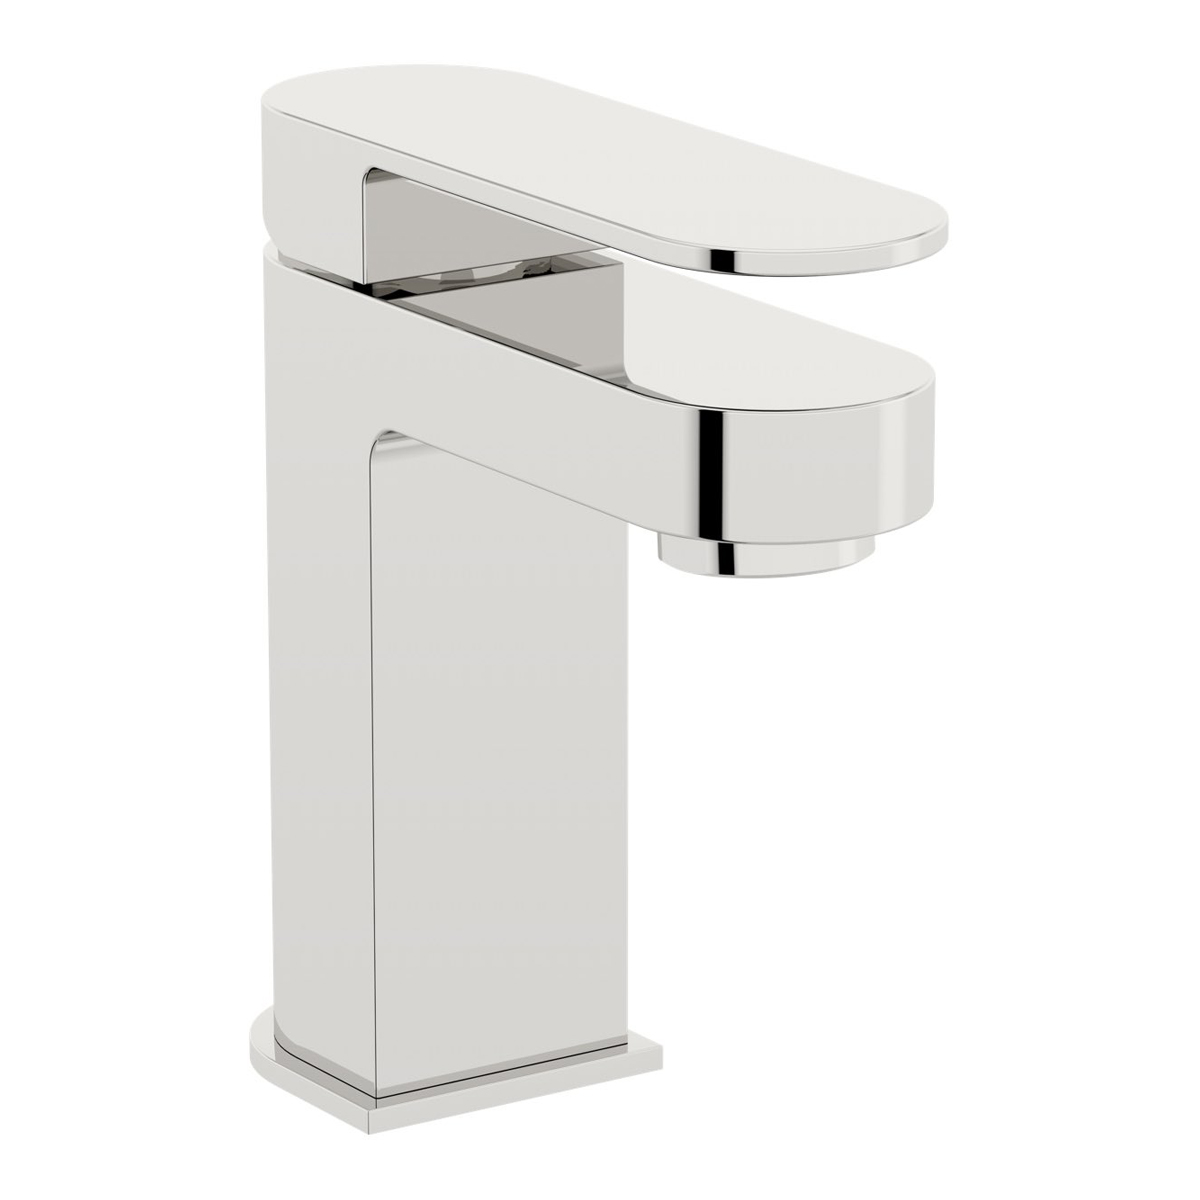 Image of Stanford Cloakroom Basin Mixer